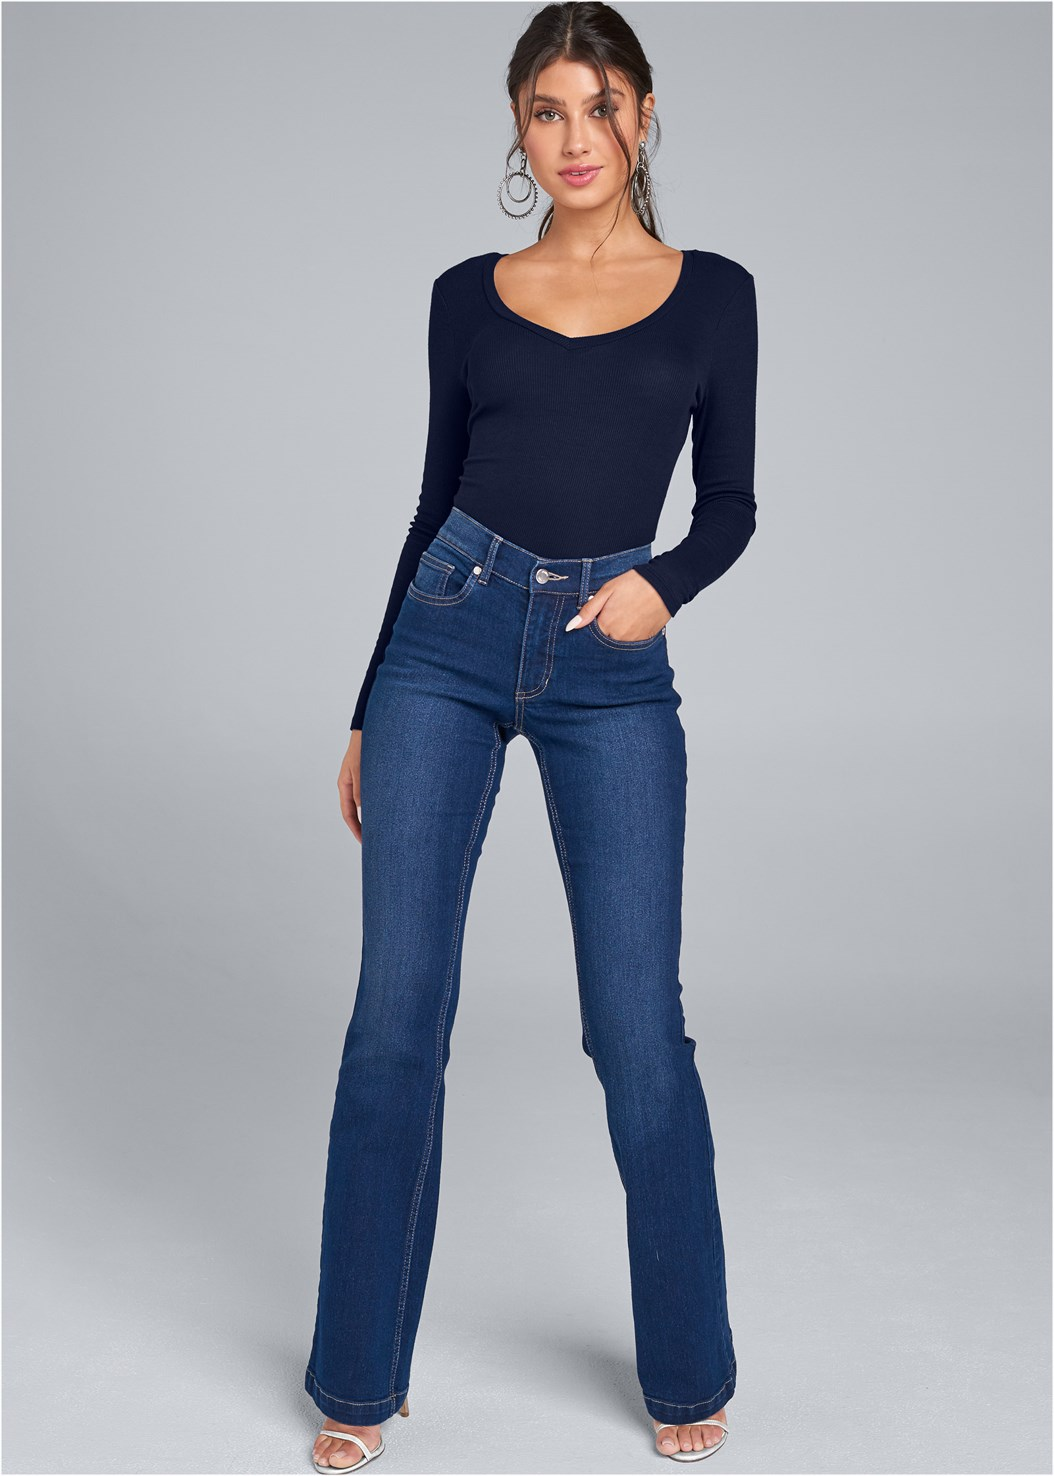 Casual Bootcut Jeans,Ribbed V-Neck Top,Ribbed Long Sleeve Top,Cold Shoulder Casual Top,Faux Suede Pointy Booties,High Heel Strappy Sandals,Peep Toe Booties,Double Buckle Belt